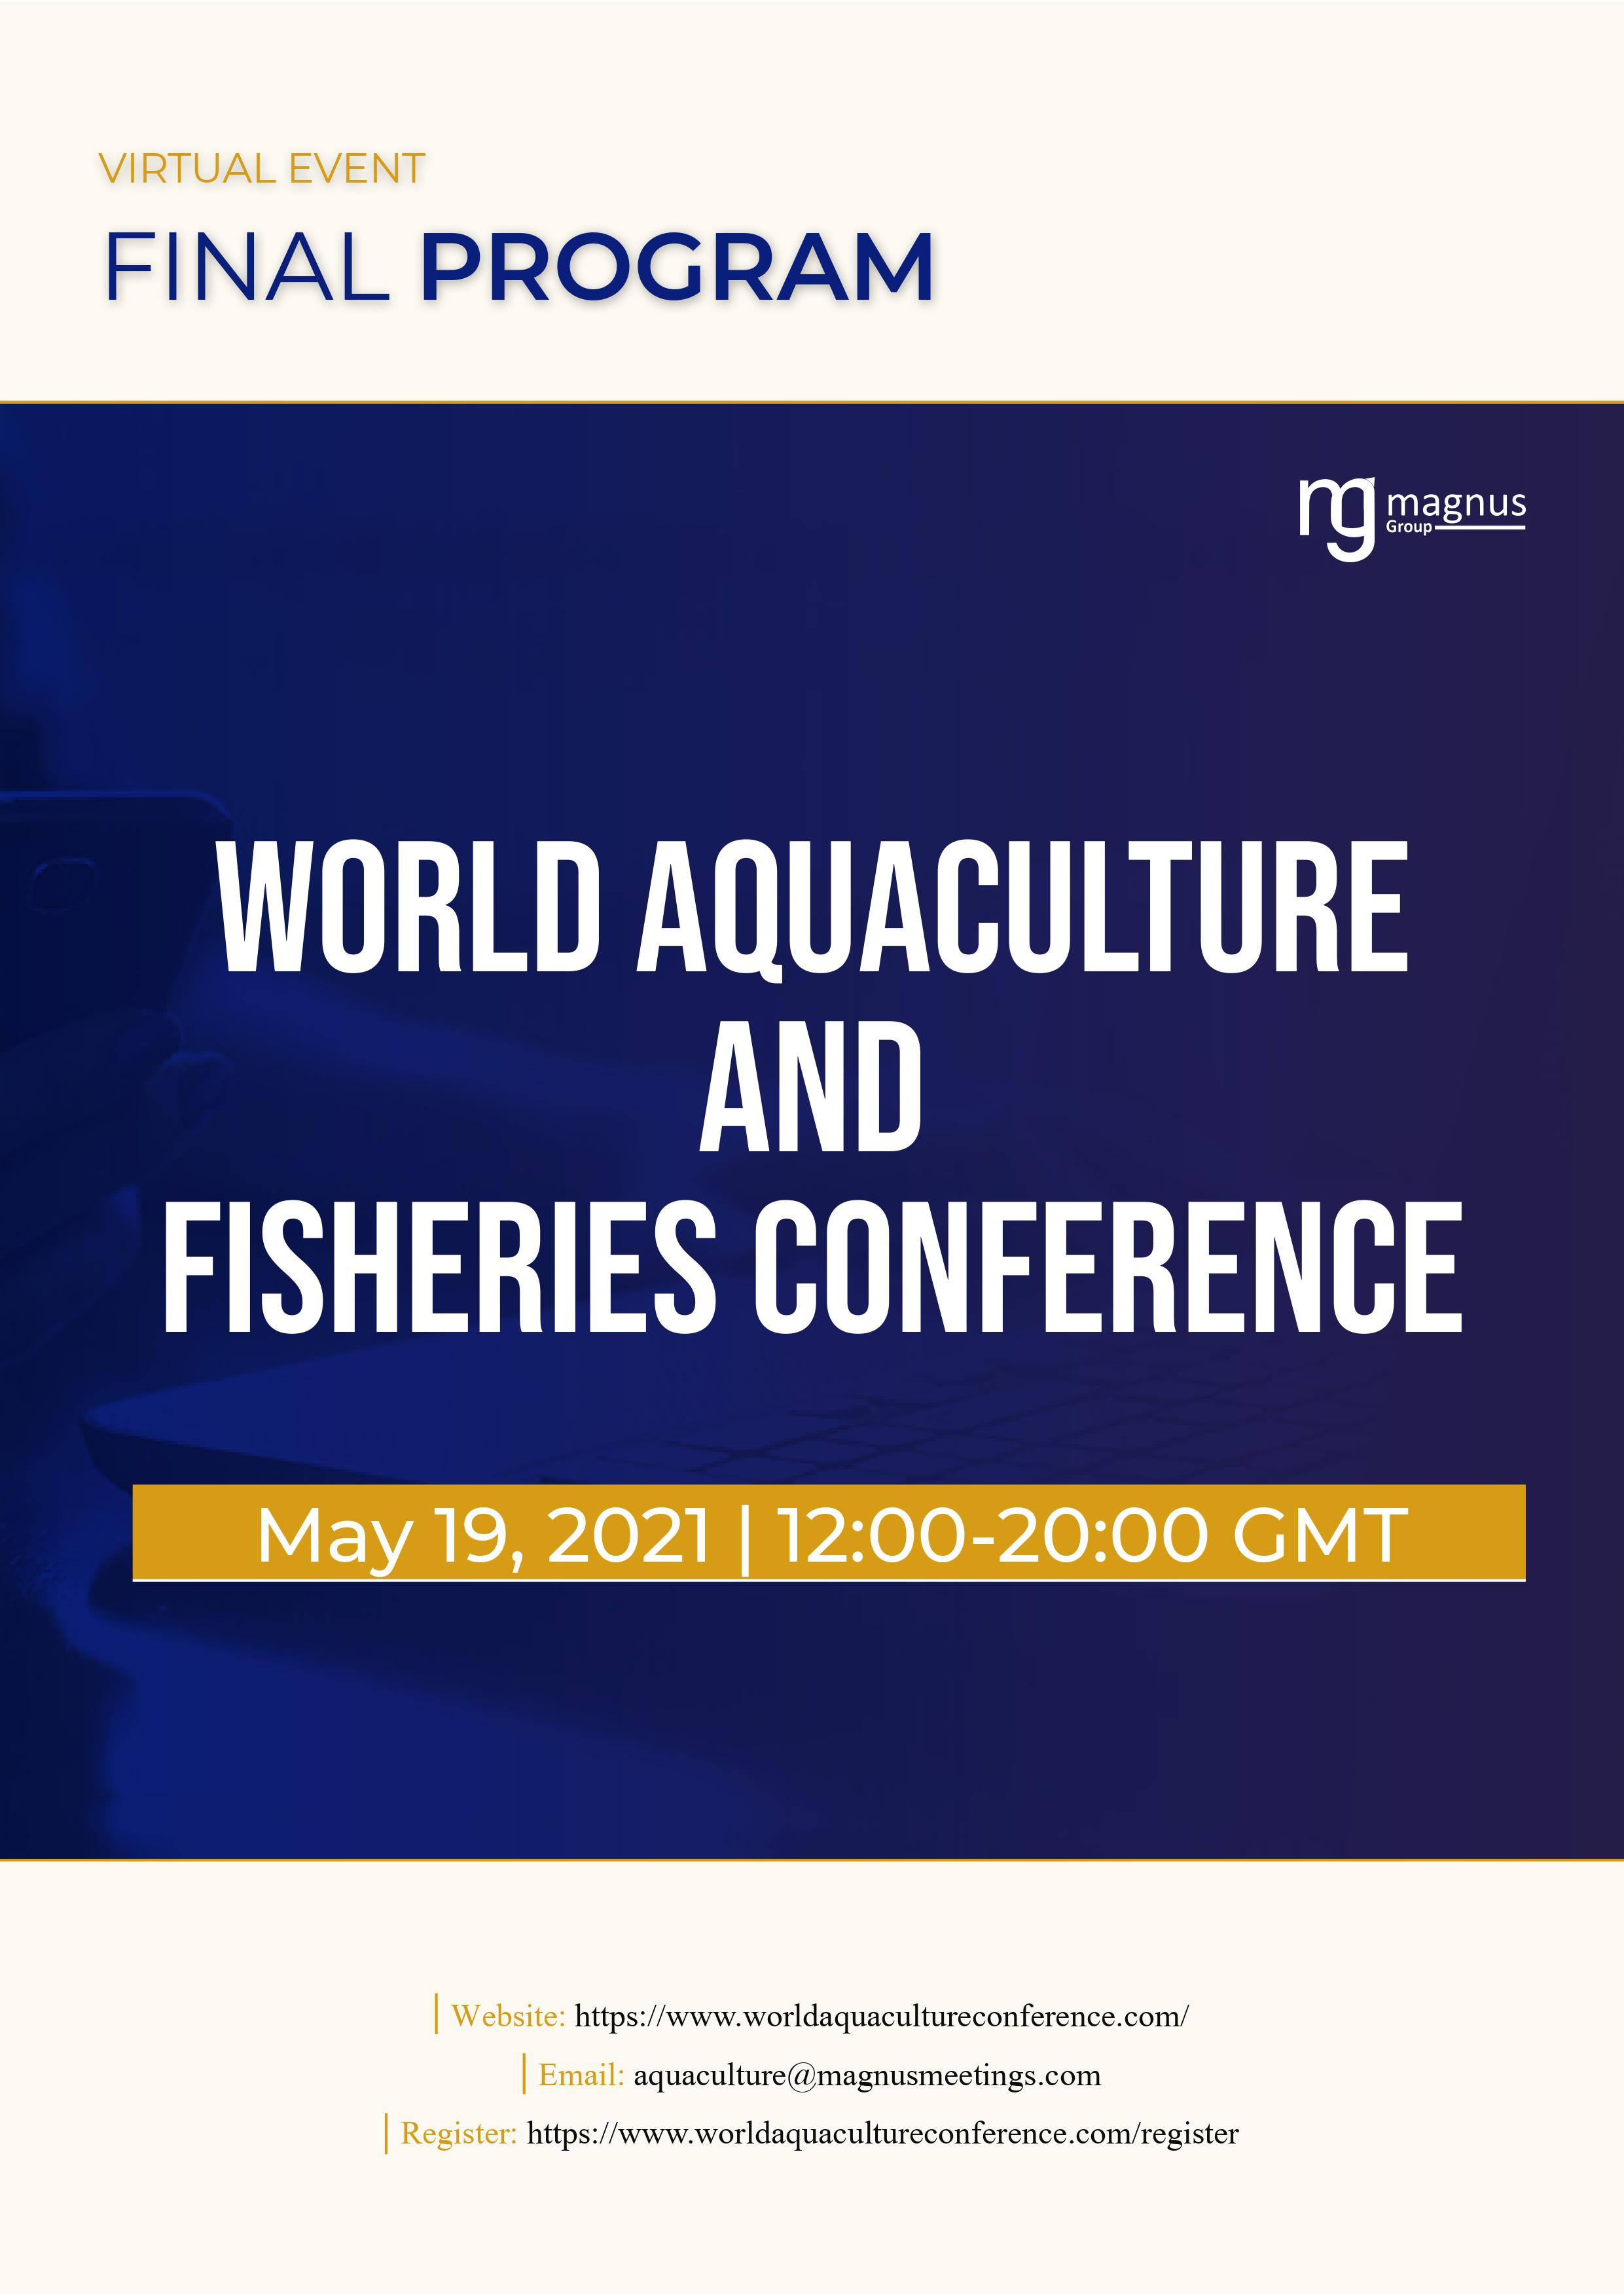 World Aquaculture and Fisheries Conference | Virtual Program